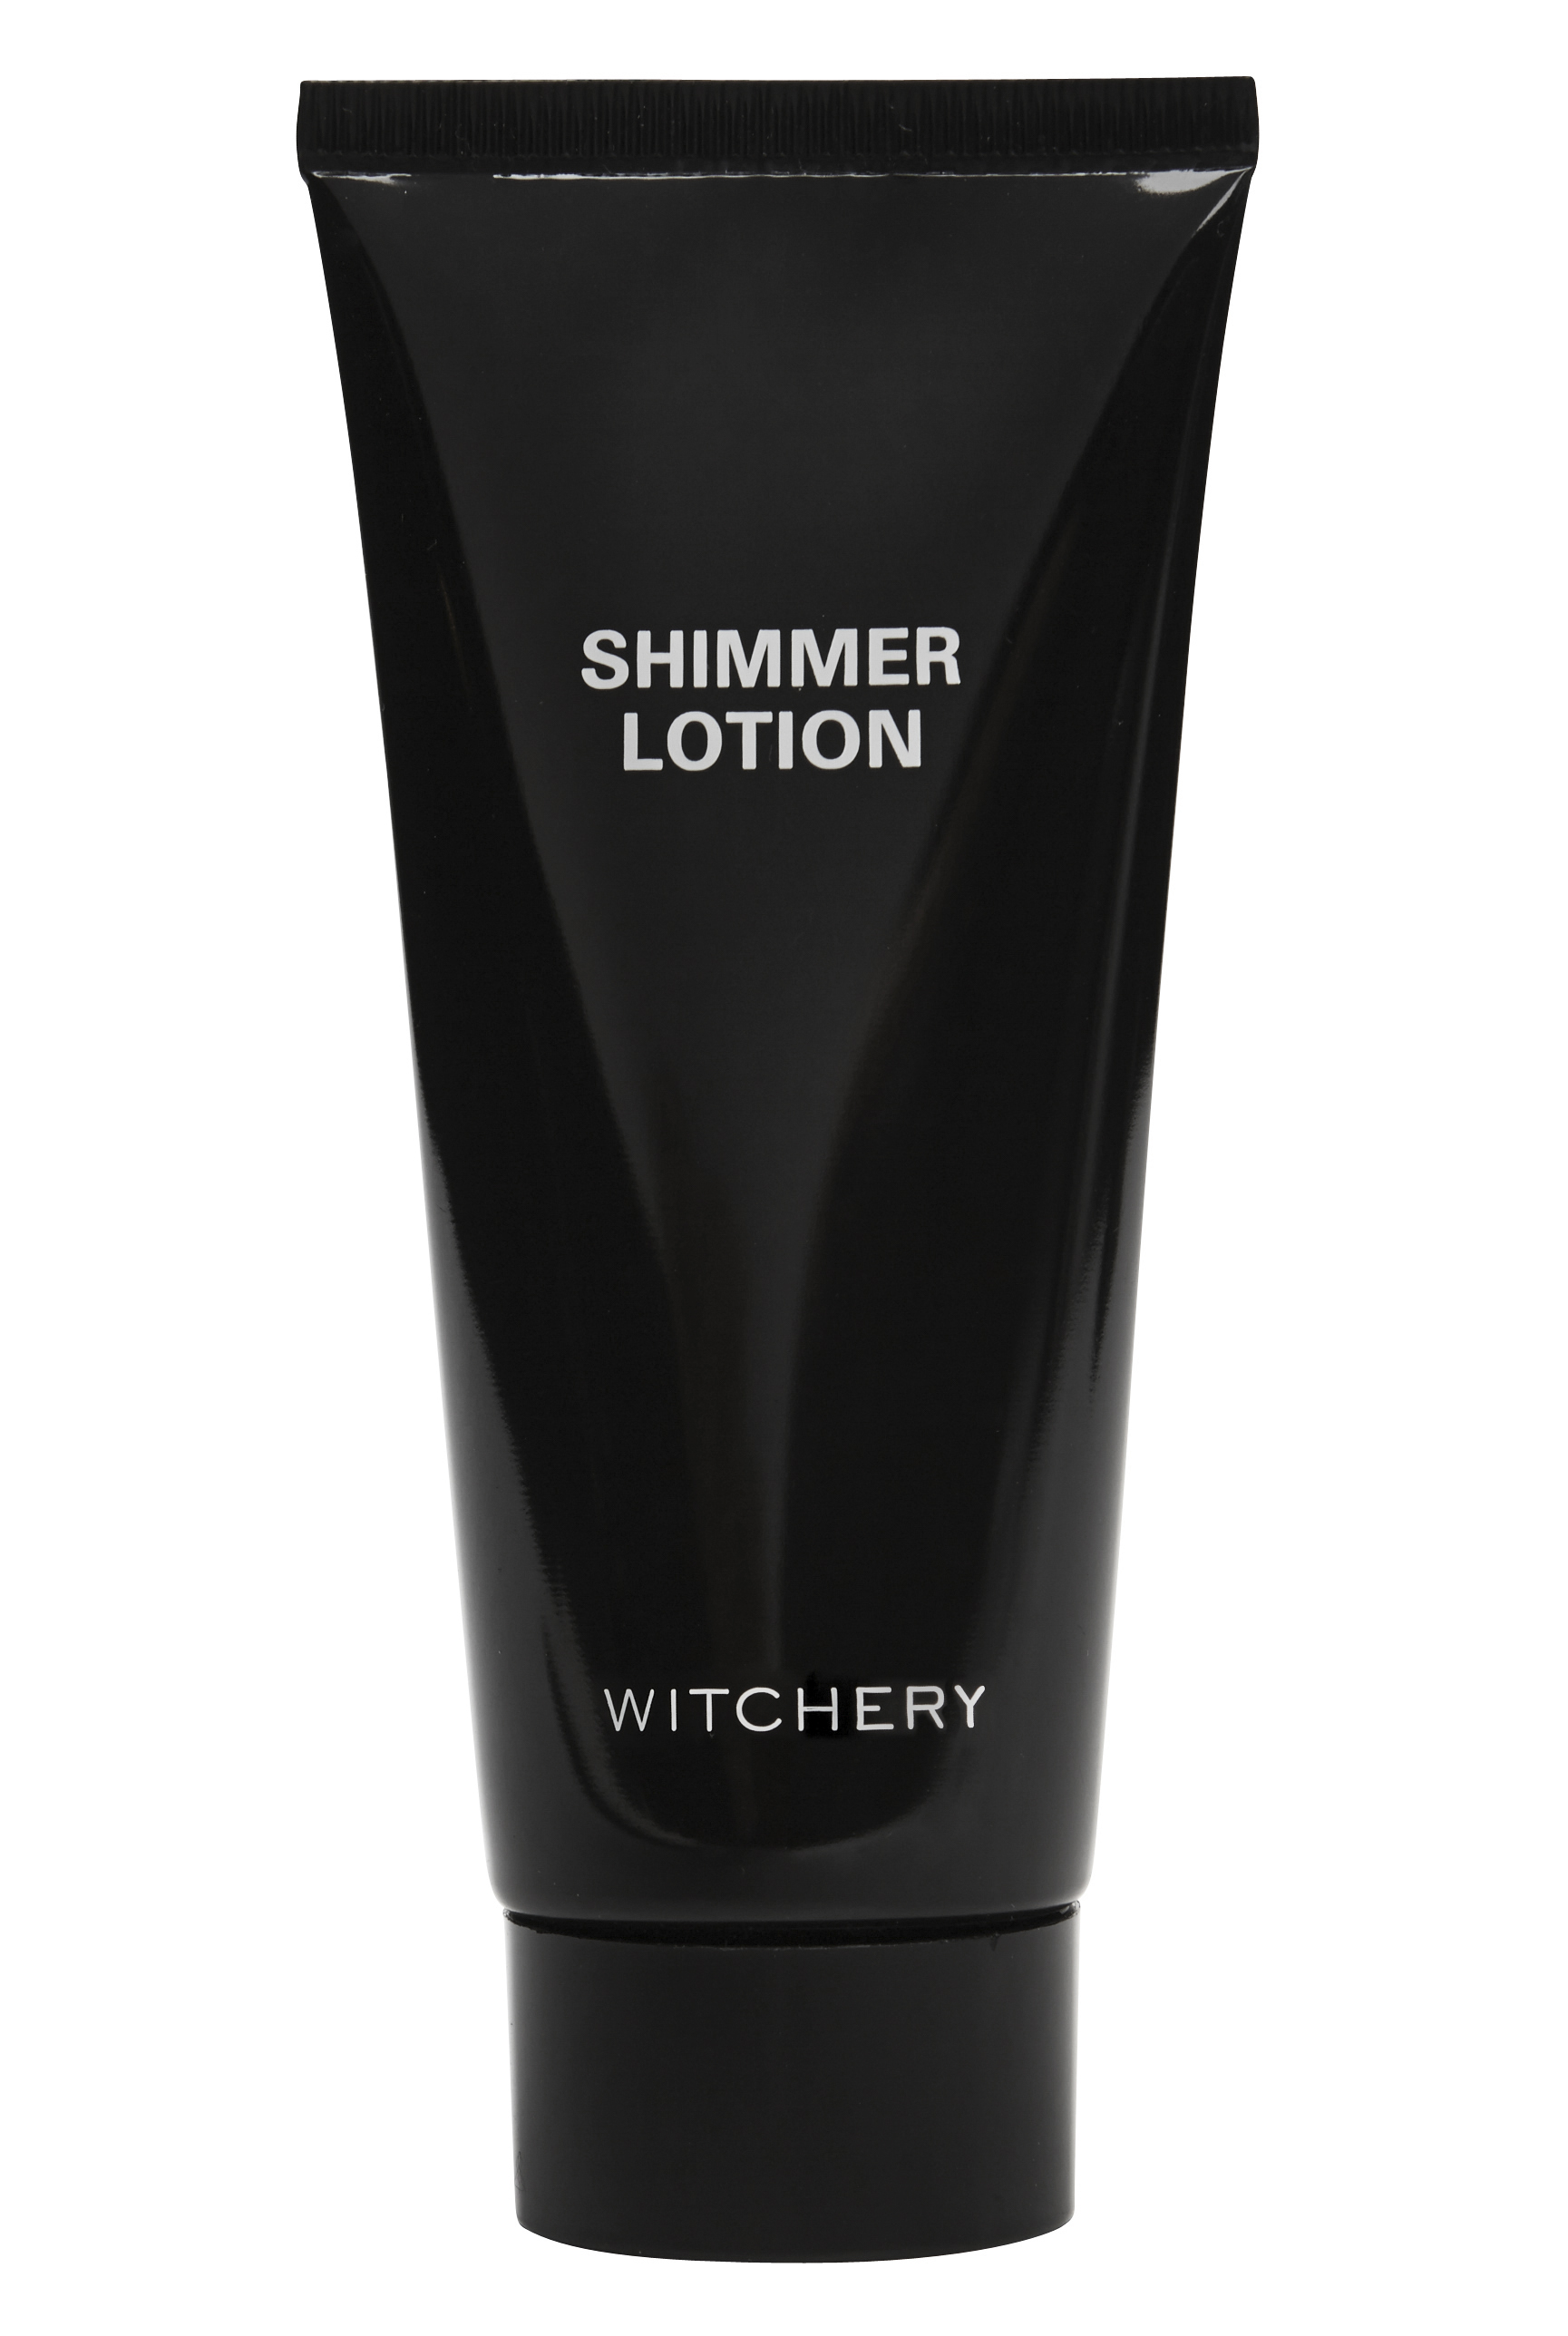 60173523_witchery-shimmer-lotion-rrp18-90